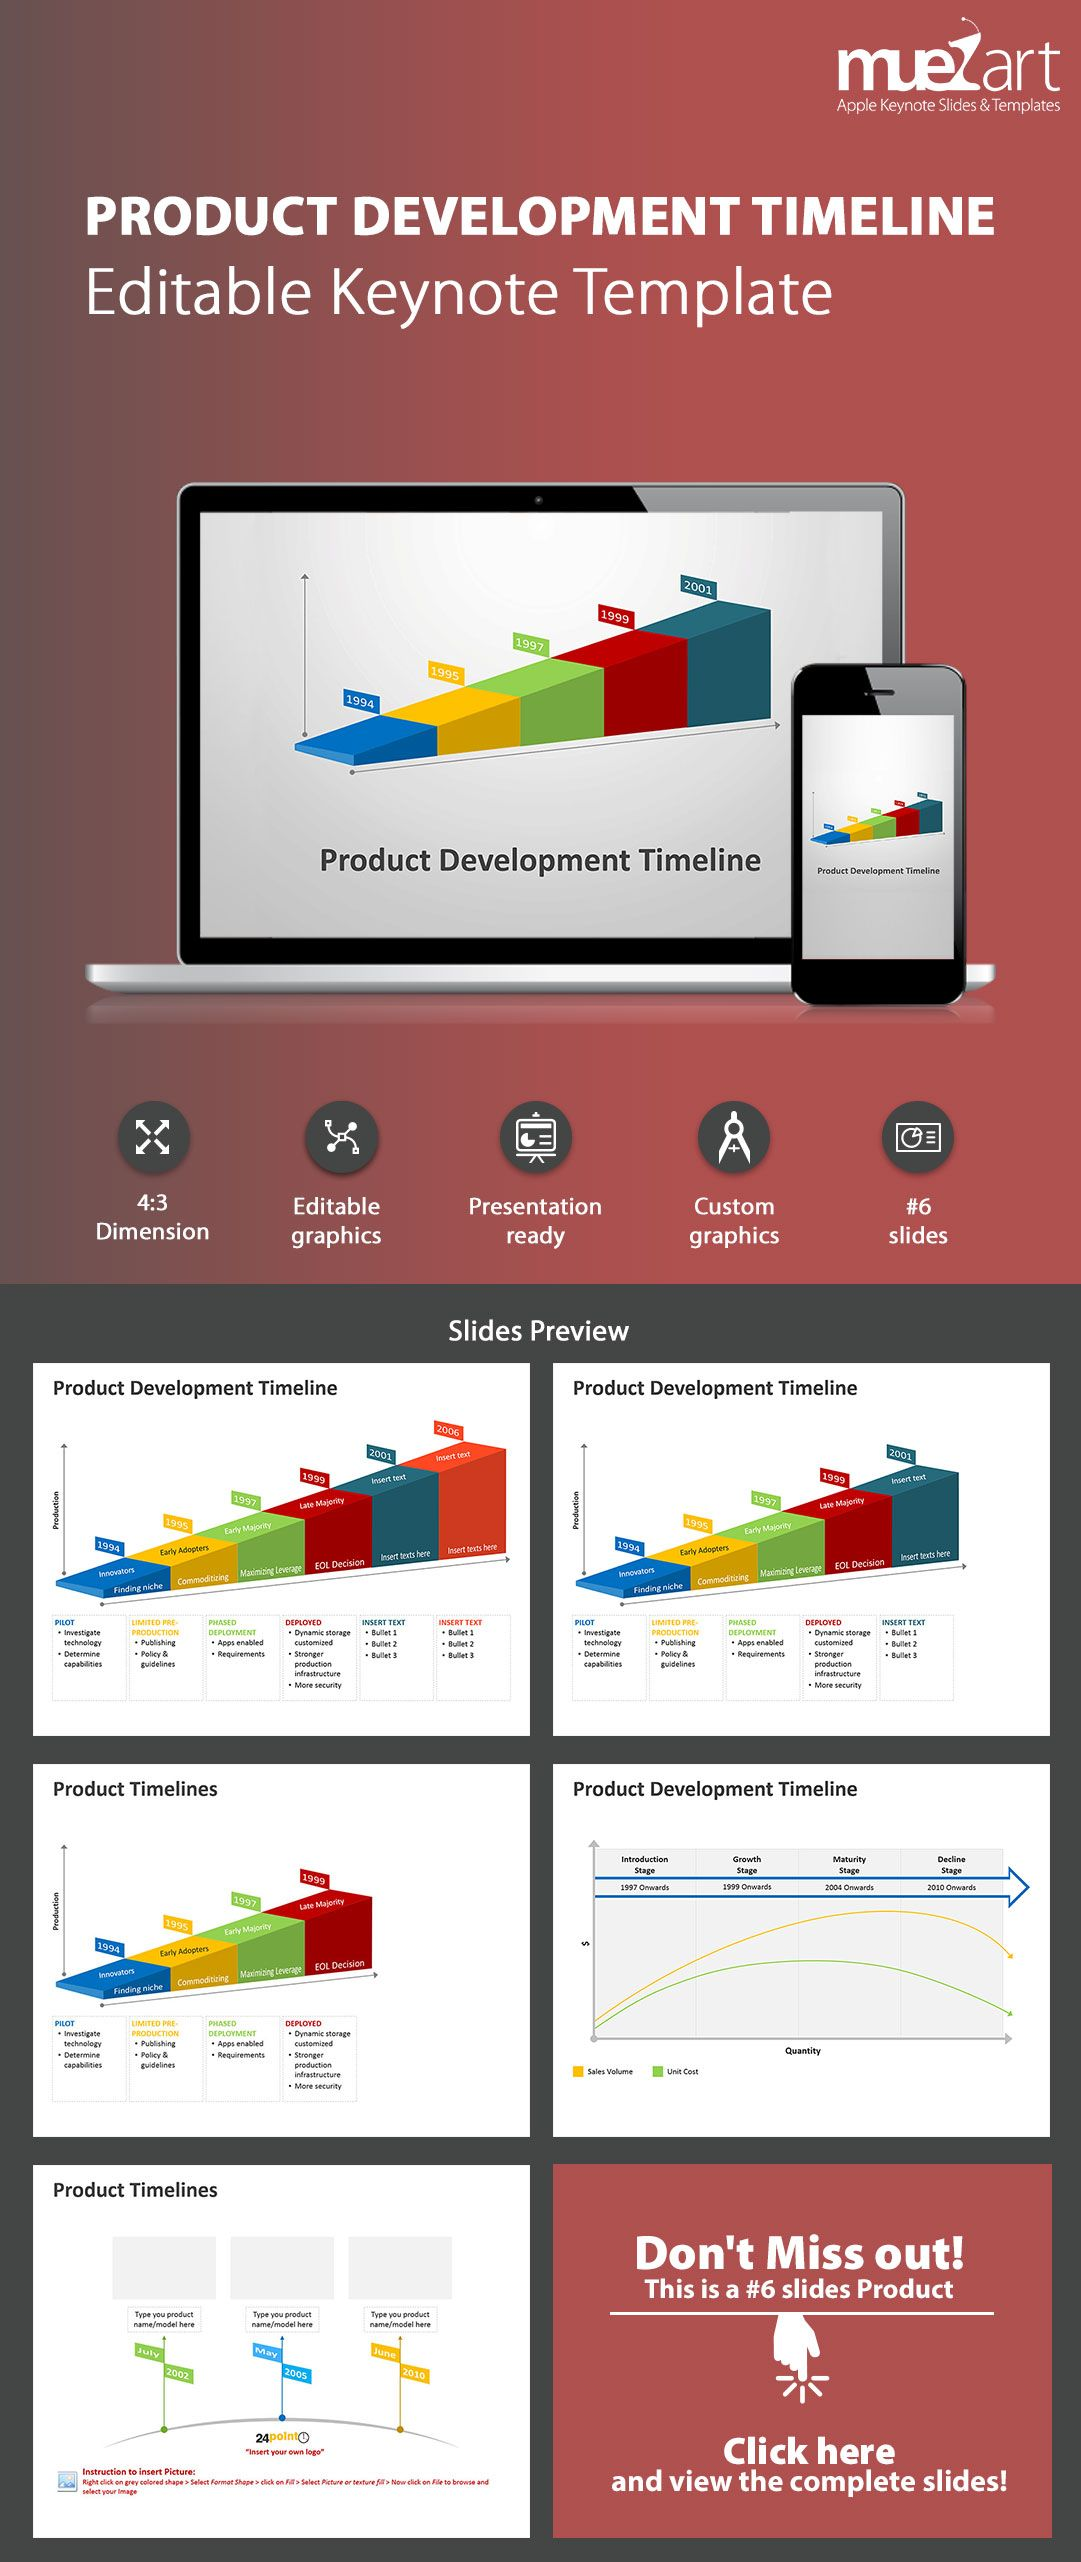 Product Development Timeline Keynote Template for iOS